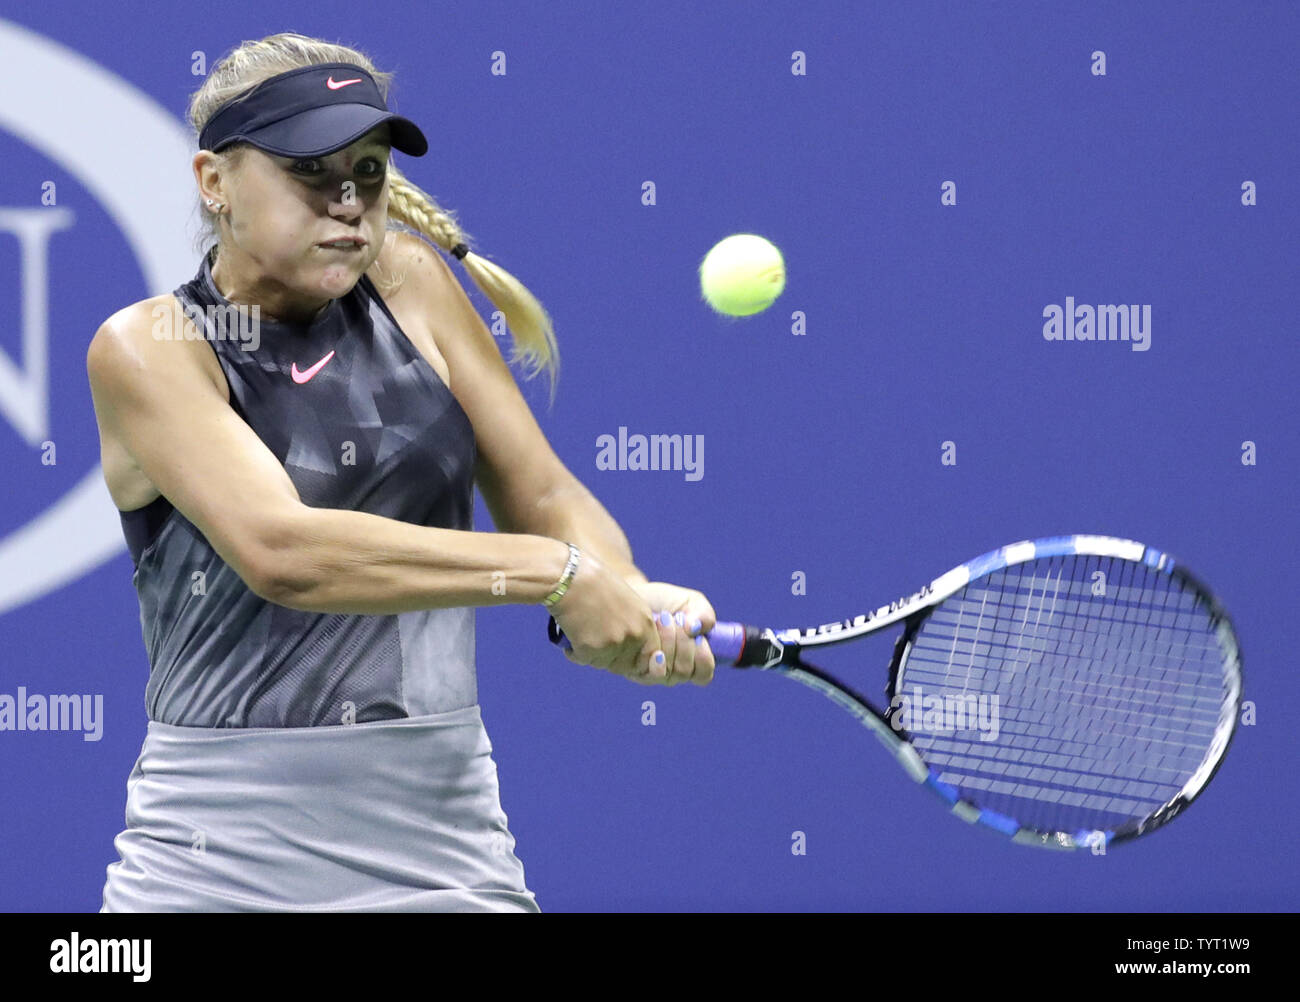 Sofia Kenin Hits A Backhand To Maria Sharapova Of Russia In Their 3rd Round Match On Day 5 In Arthur Ashe Stadium At The 2017 Us Open Tennis Championships At The Usta